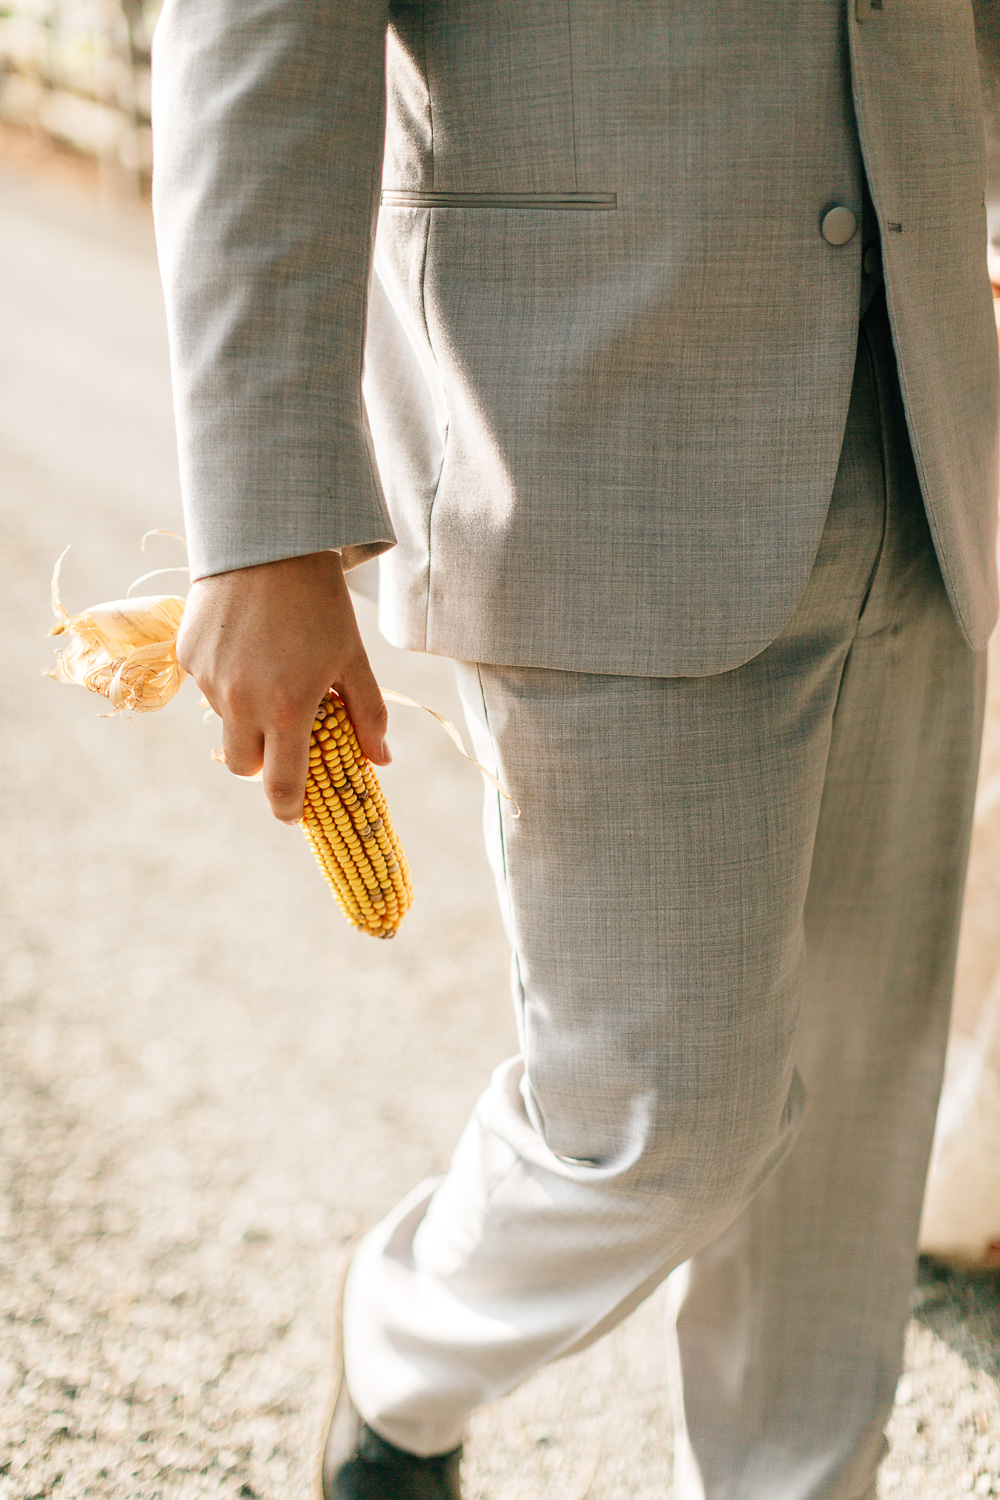 Man in gray suit holding an ear of corn